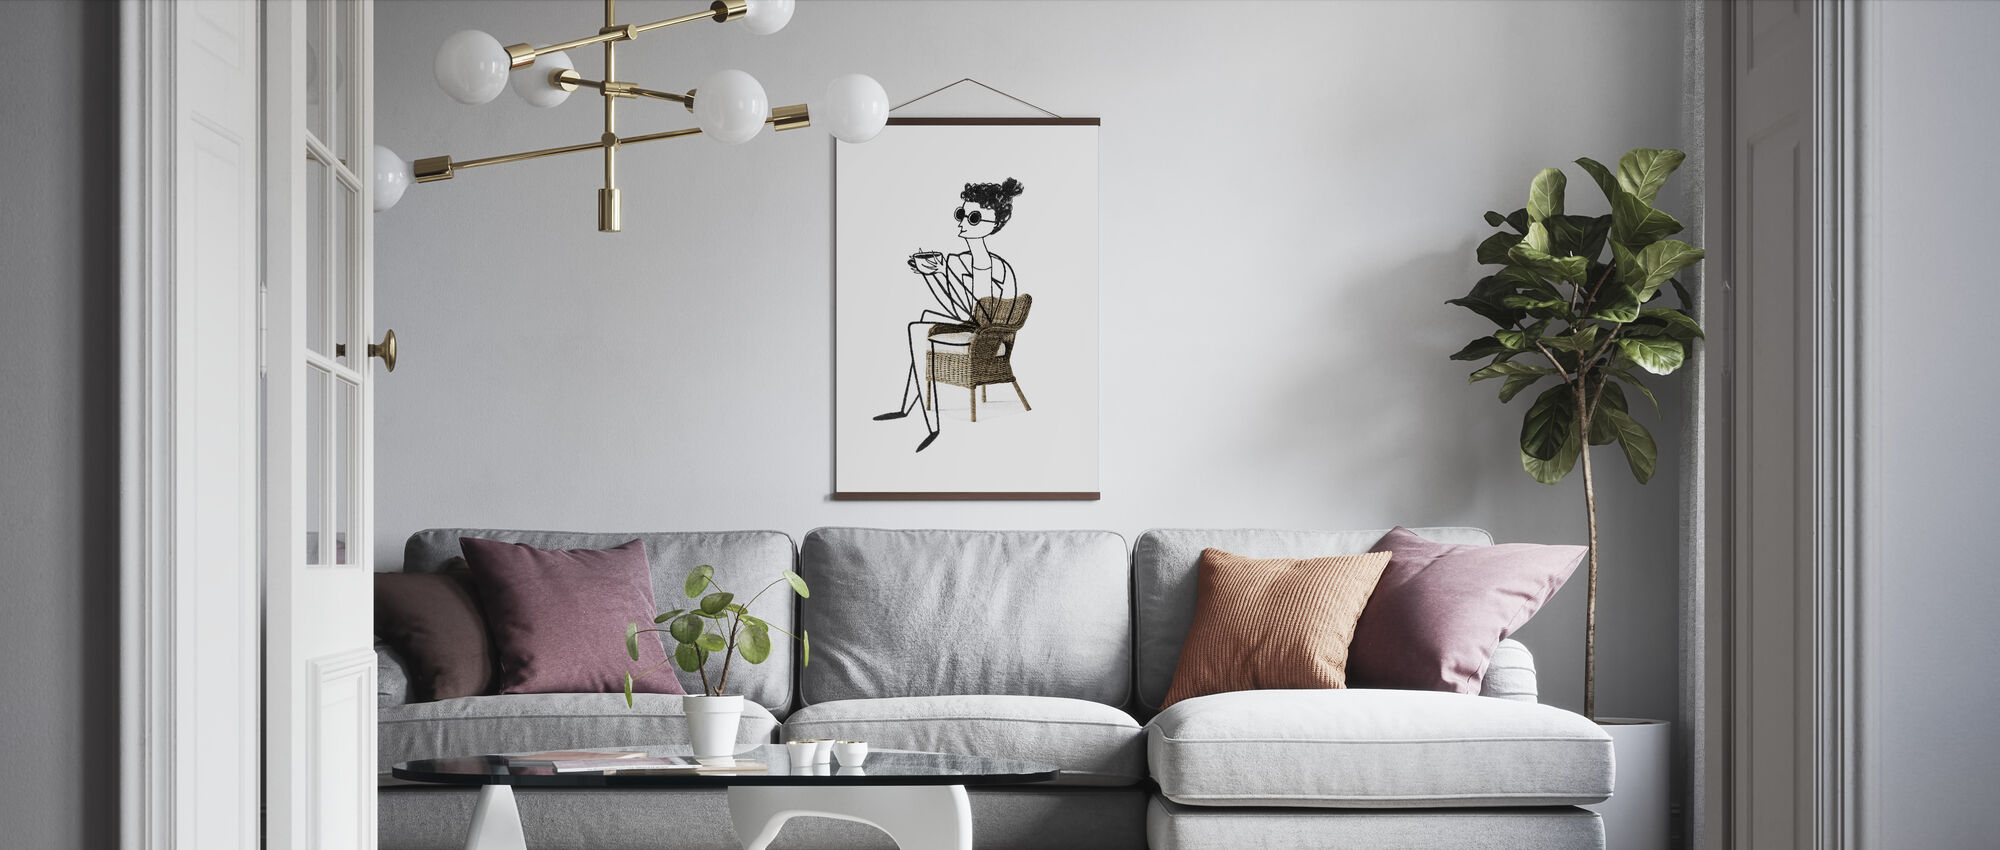 Woman Drinking Coffee - Poster - Living Room